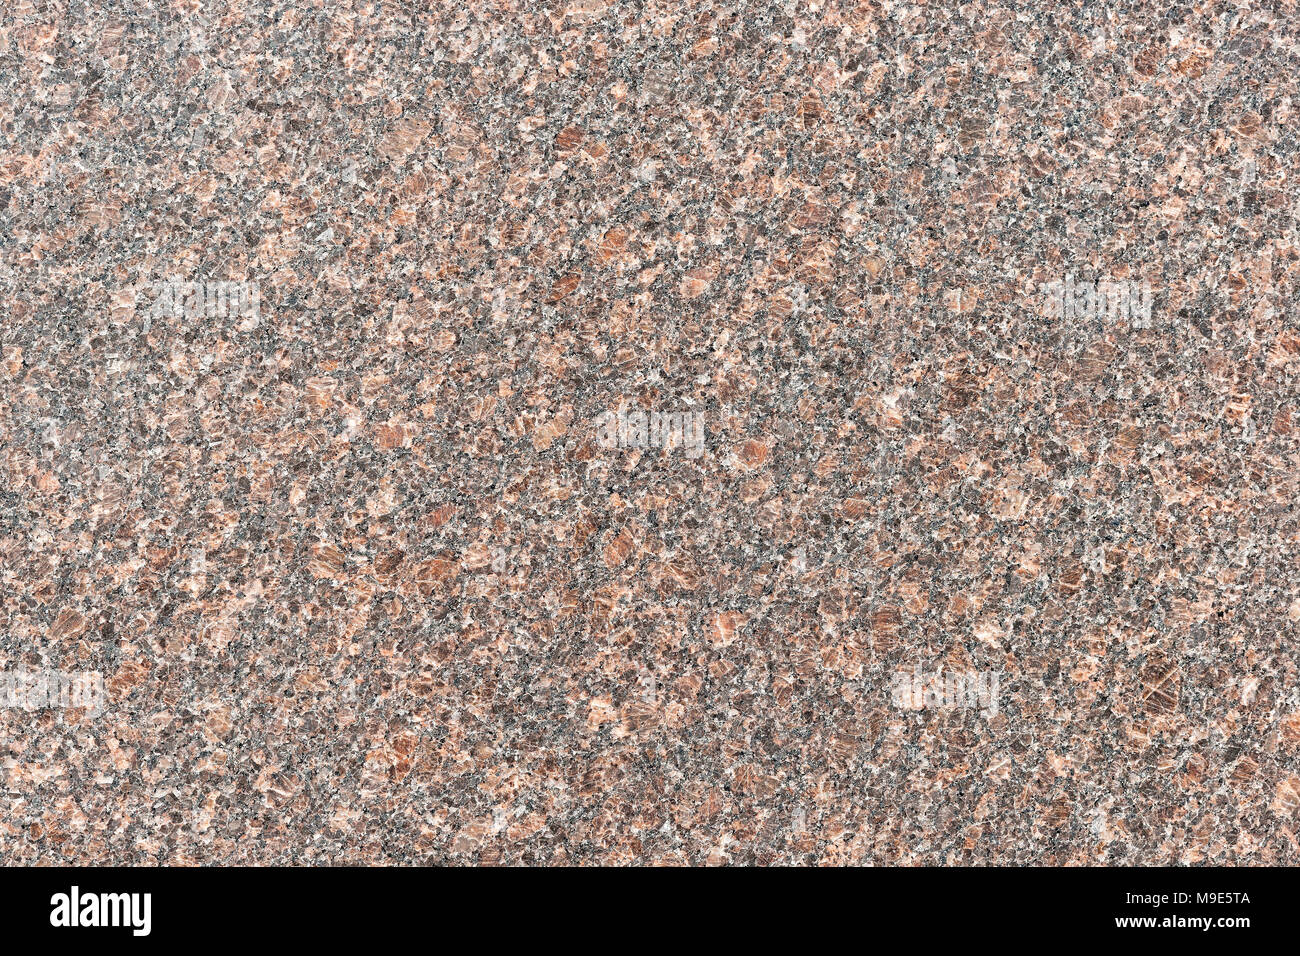 Polished granite stone plate of brown color made for decoration purposes - Stock Image